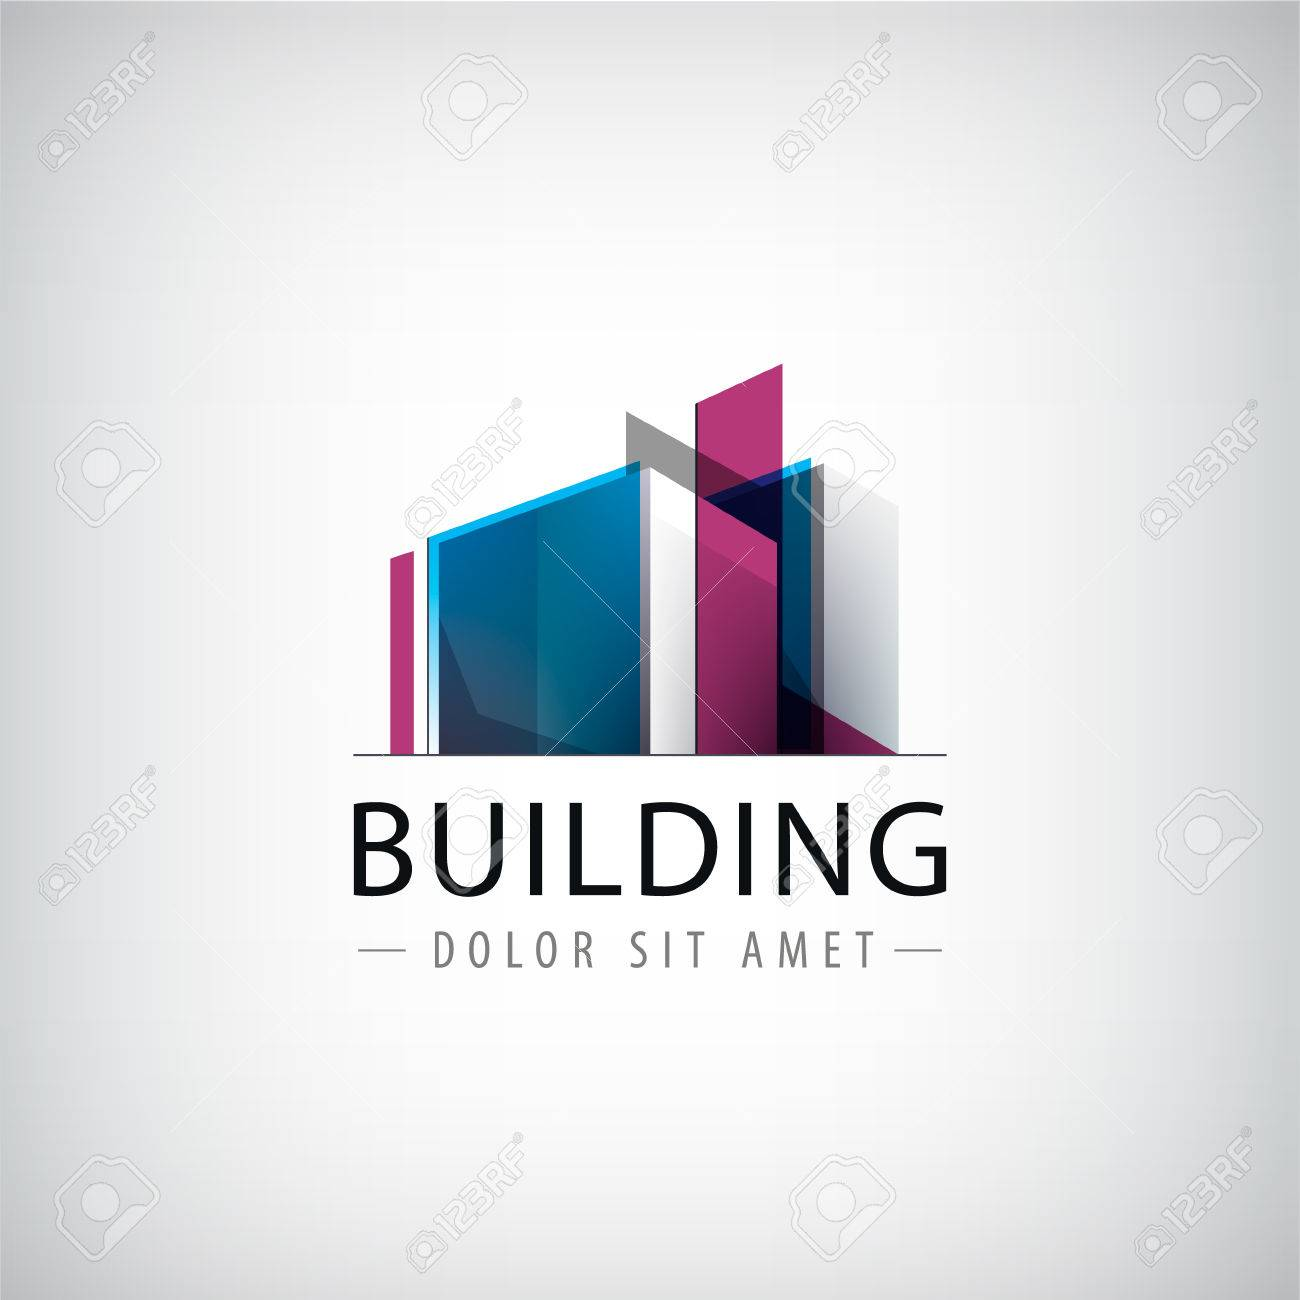 Vector abstract building colorful logo, icon isolated. Transparent geometric structure sign - 49787414